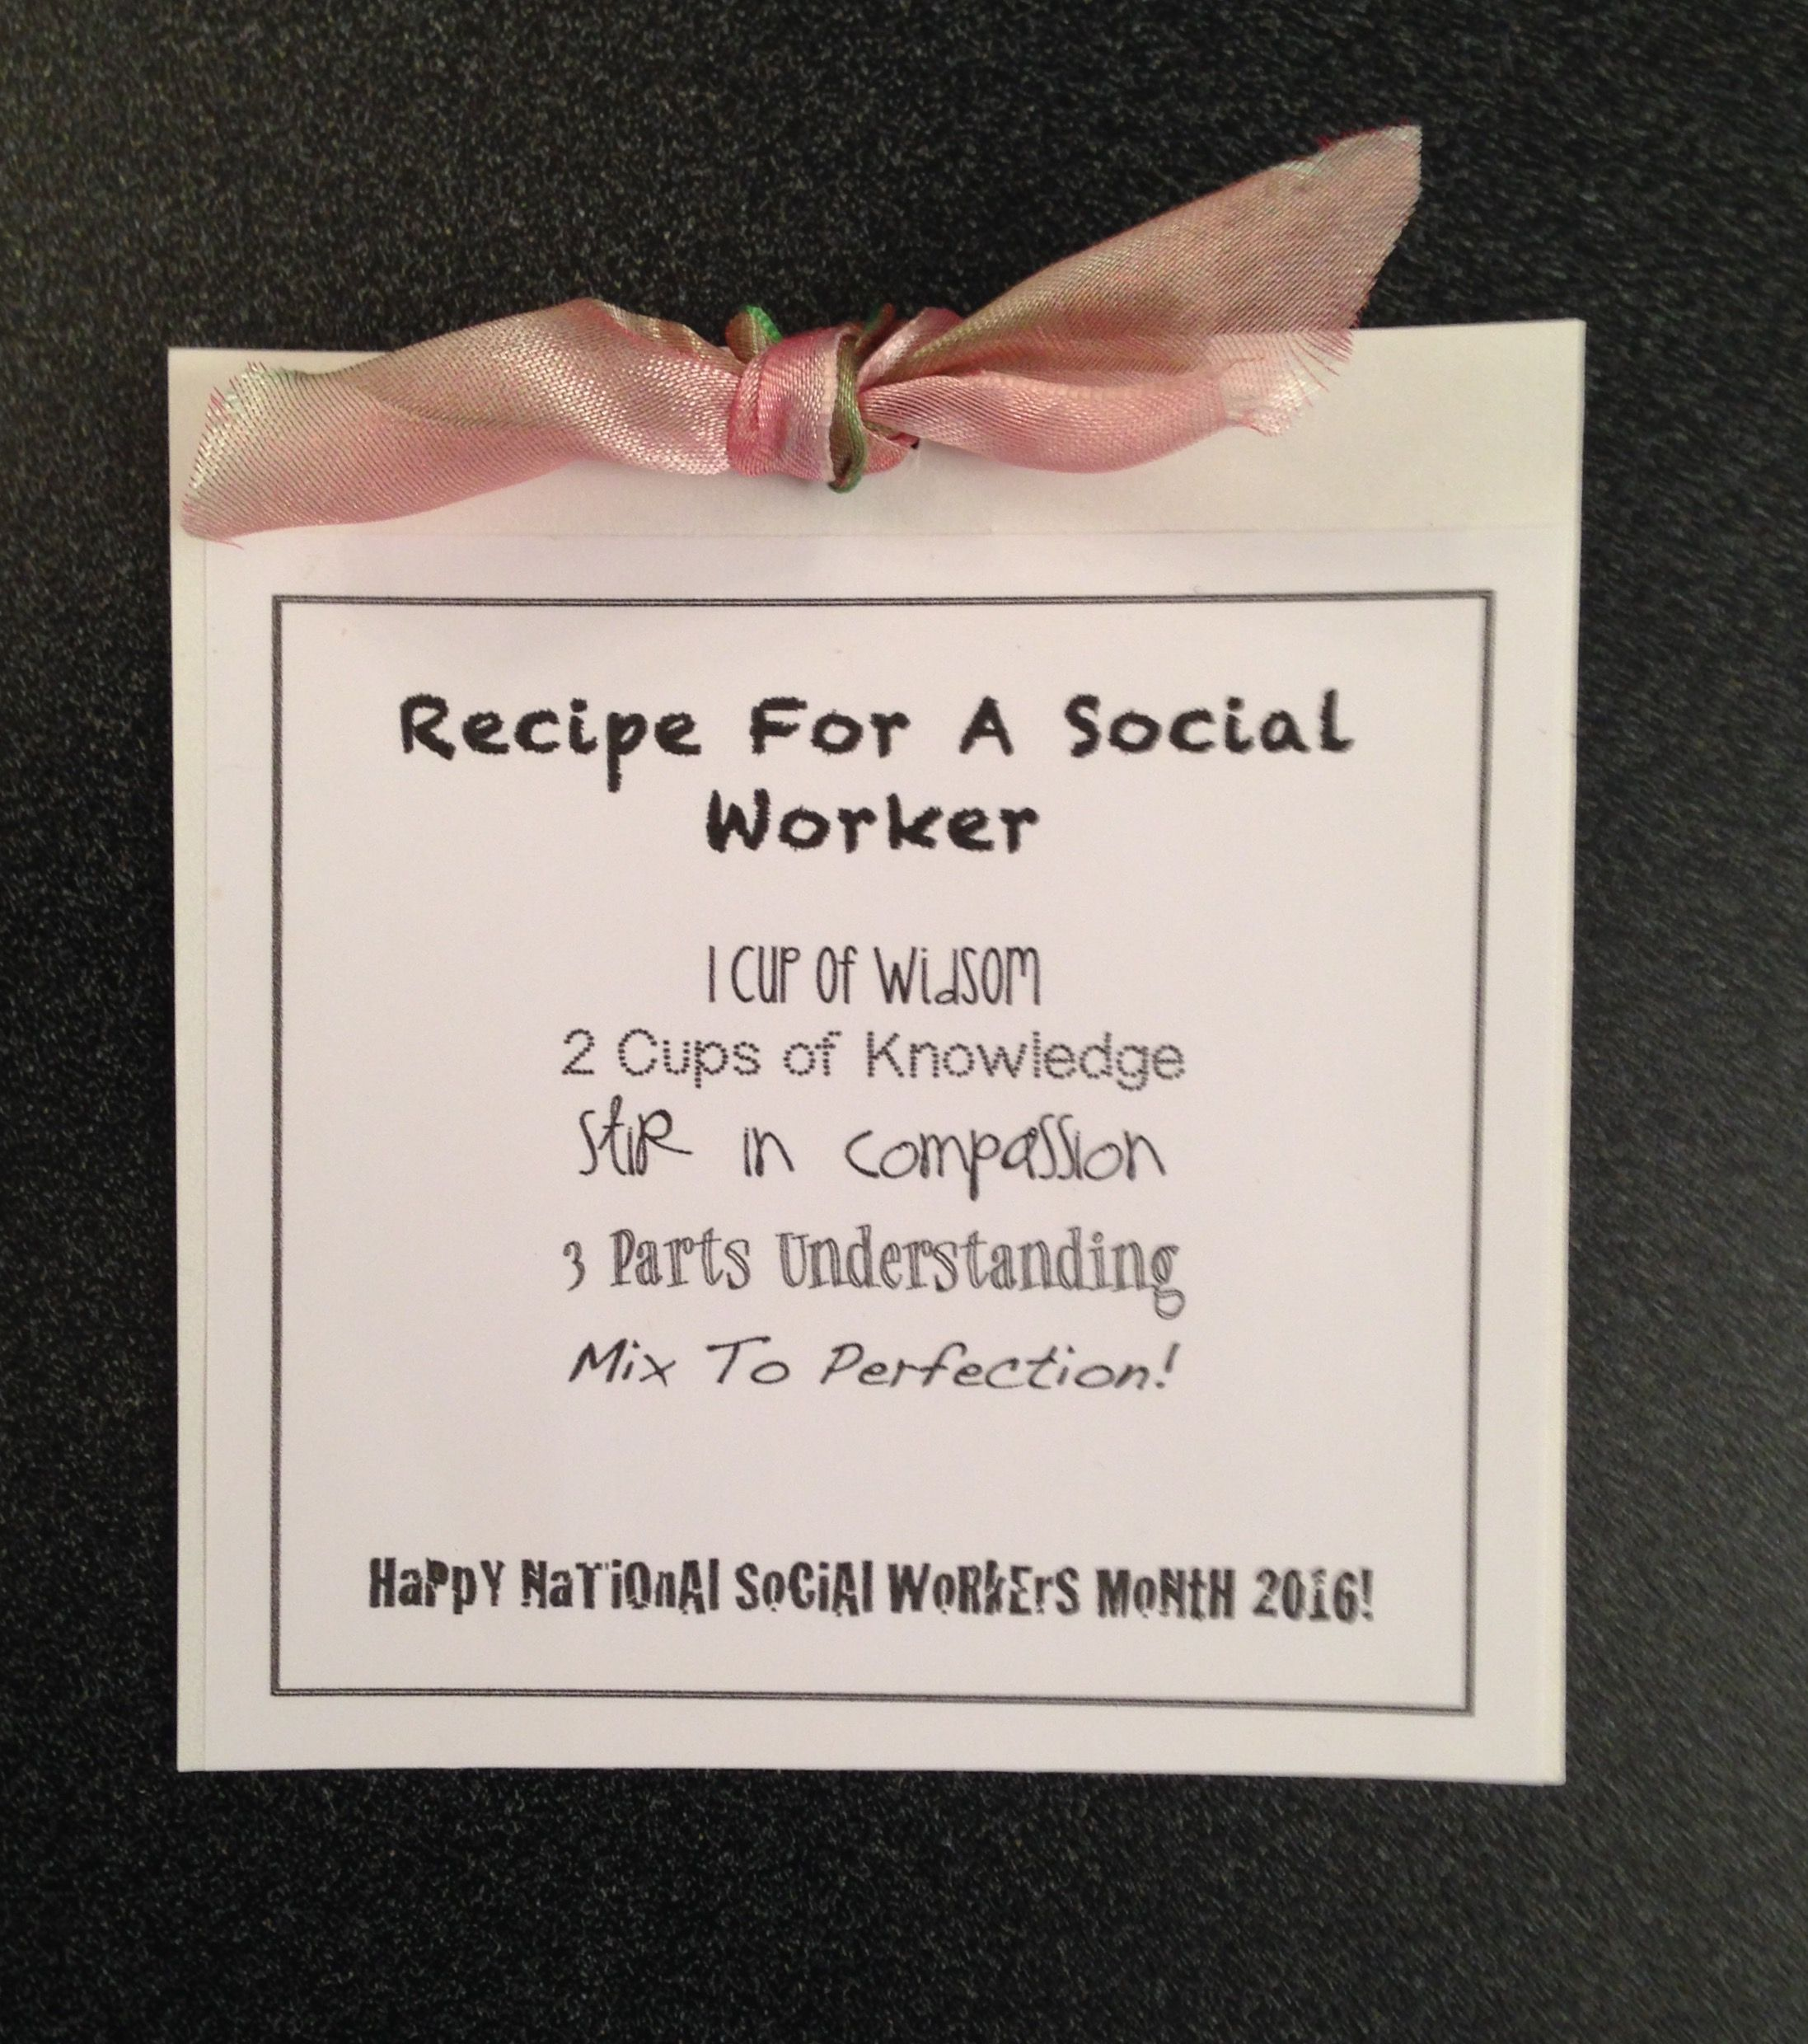 Recipe For A Social Worker pull out